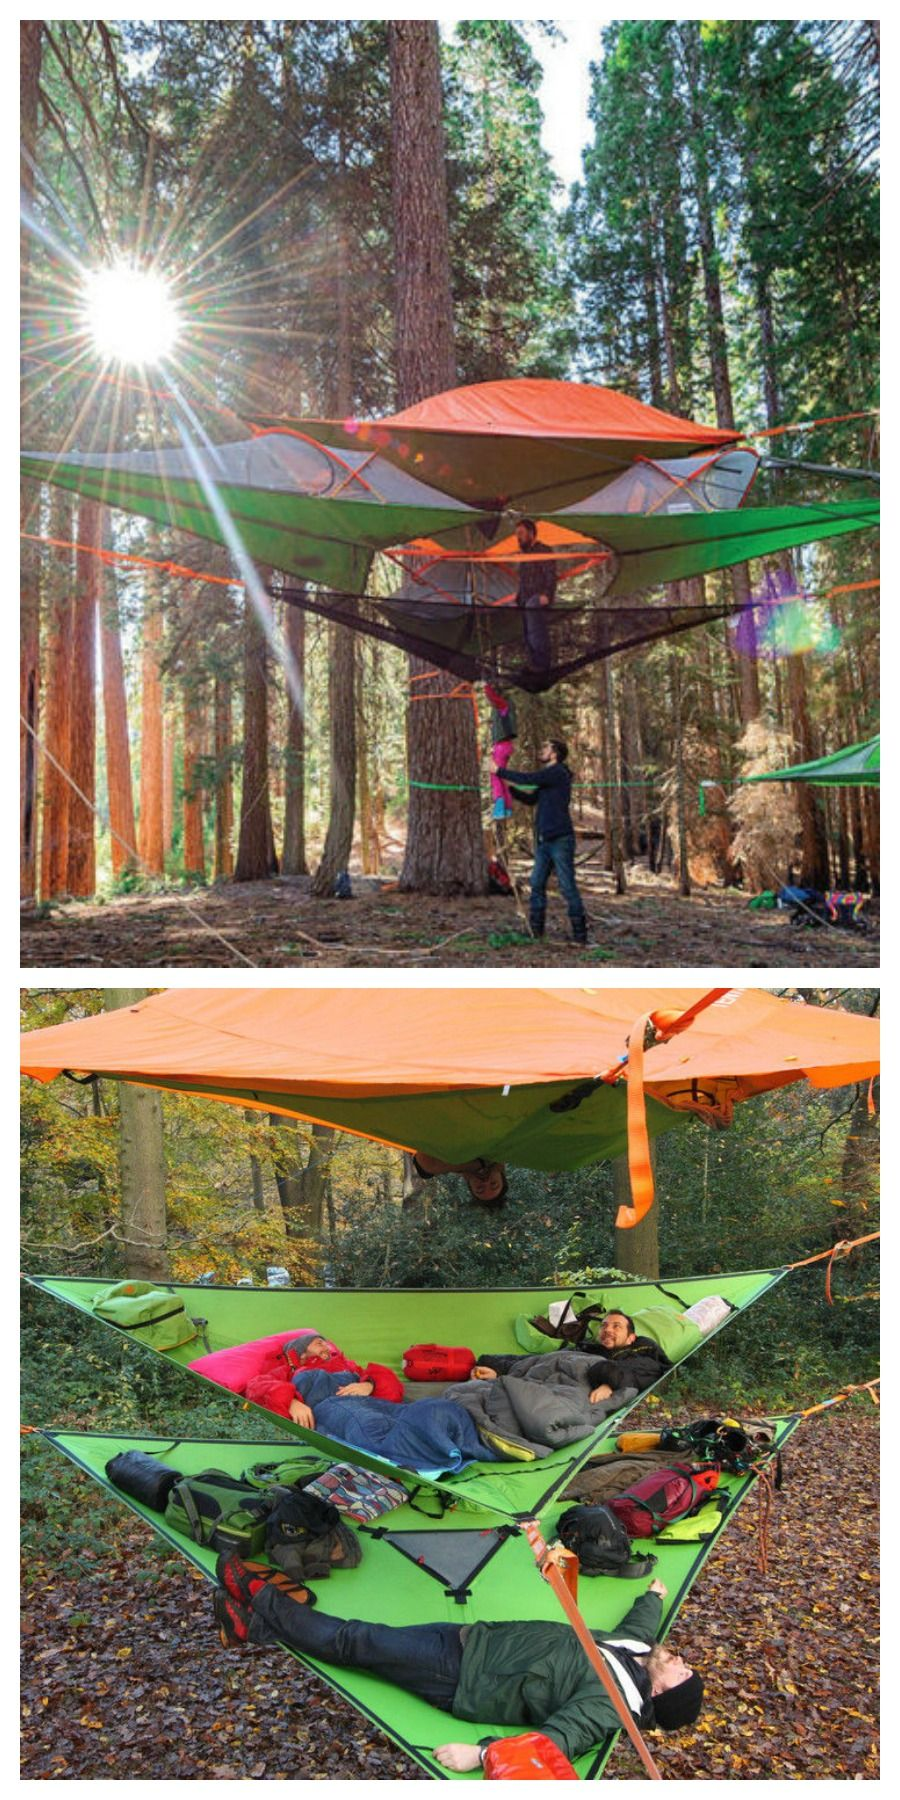 This Tent Takes Camping to a Whole New Level | Tent, Treehouse and ...